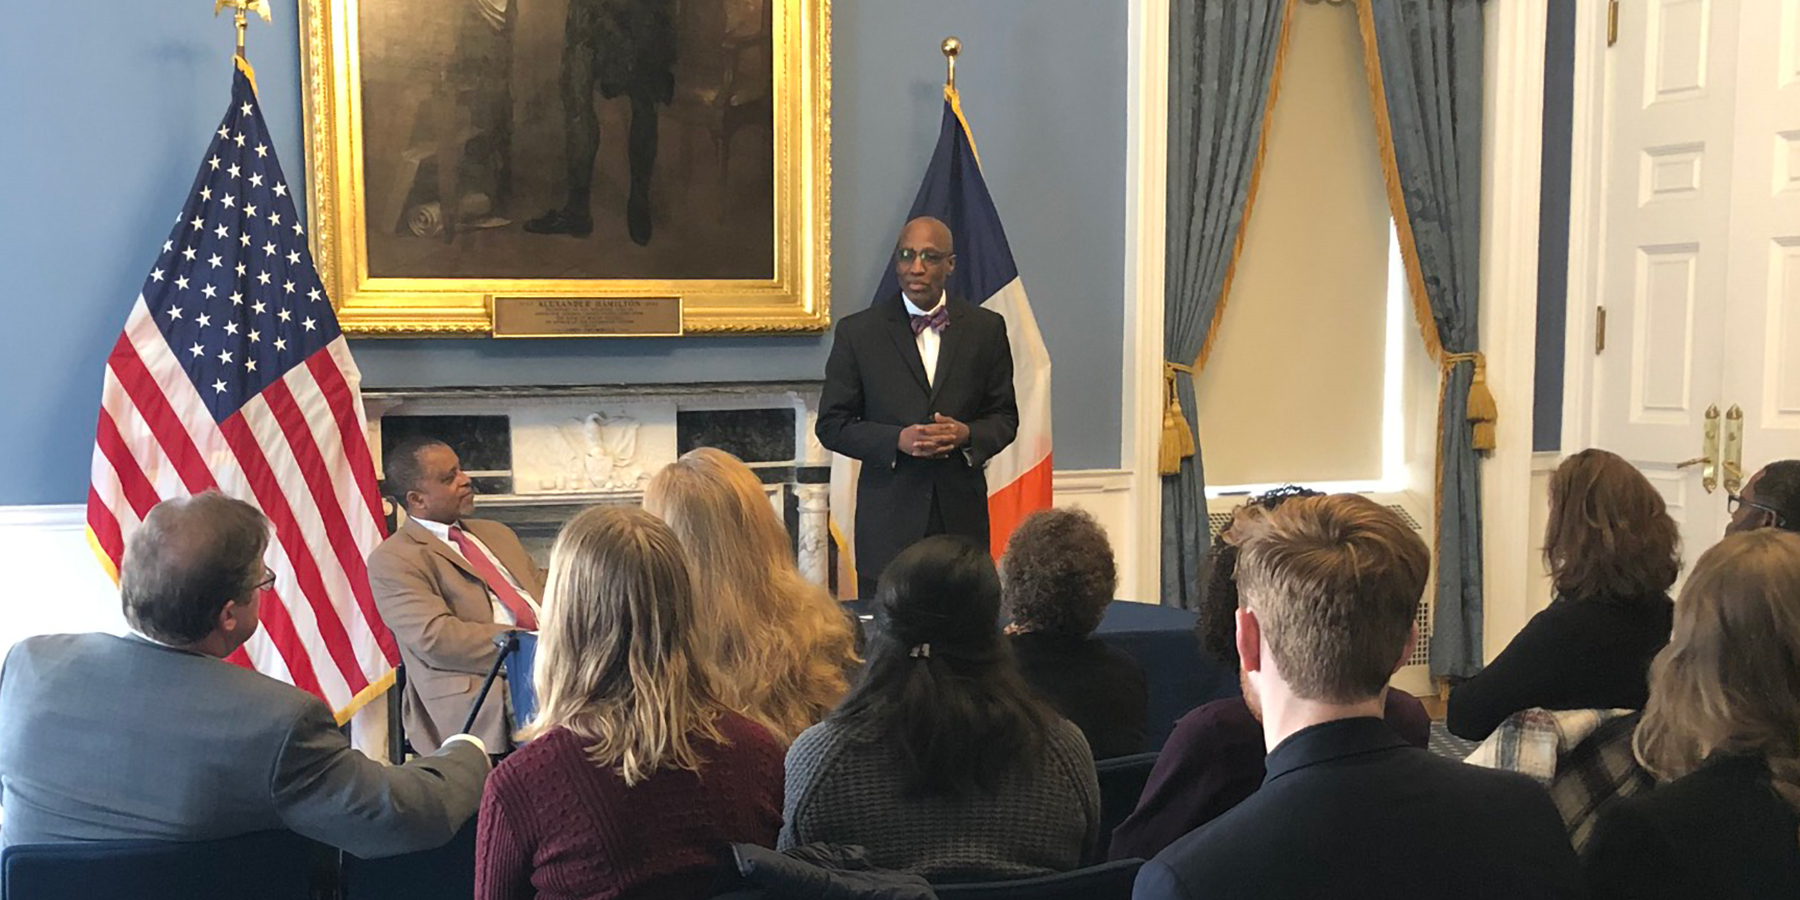 J. Herbert Nelson introduces members of a PC(USA) delegation at a meeting with leaders from New York Mayor di Blasio's office. Photo provided.